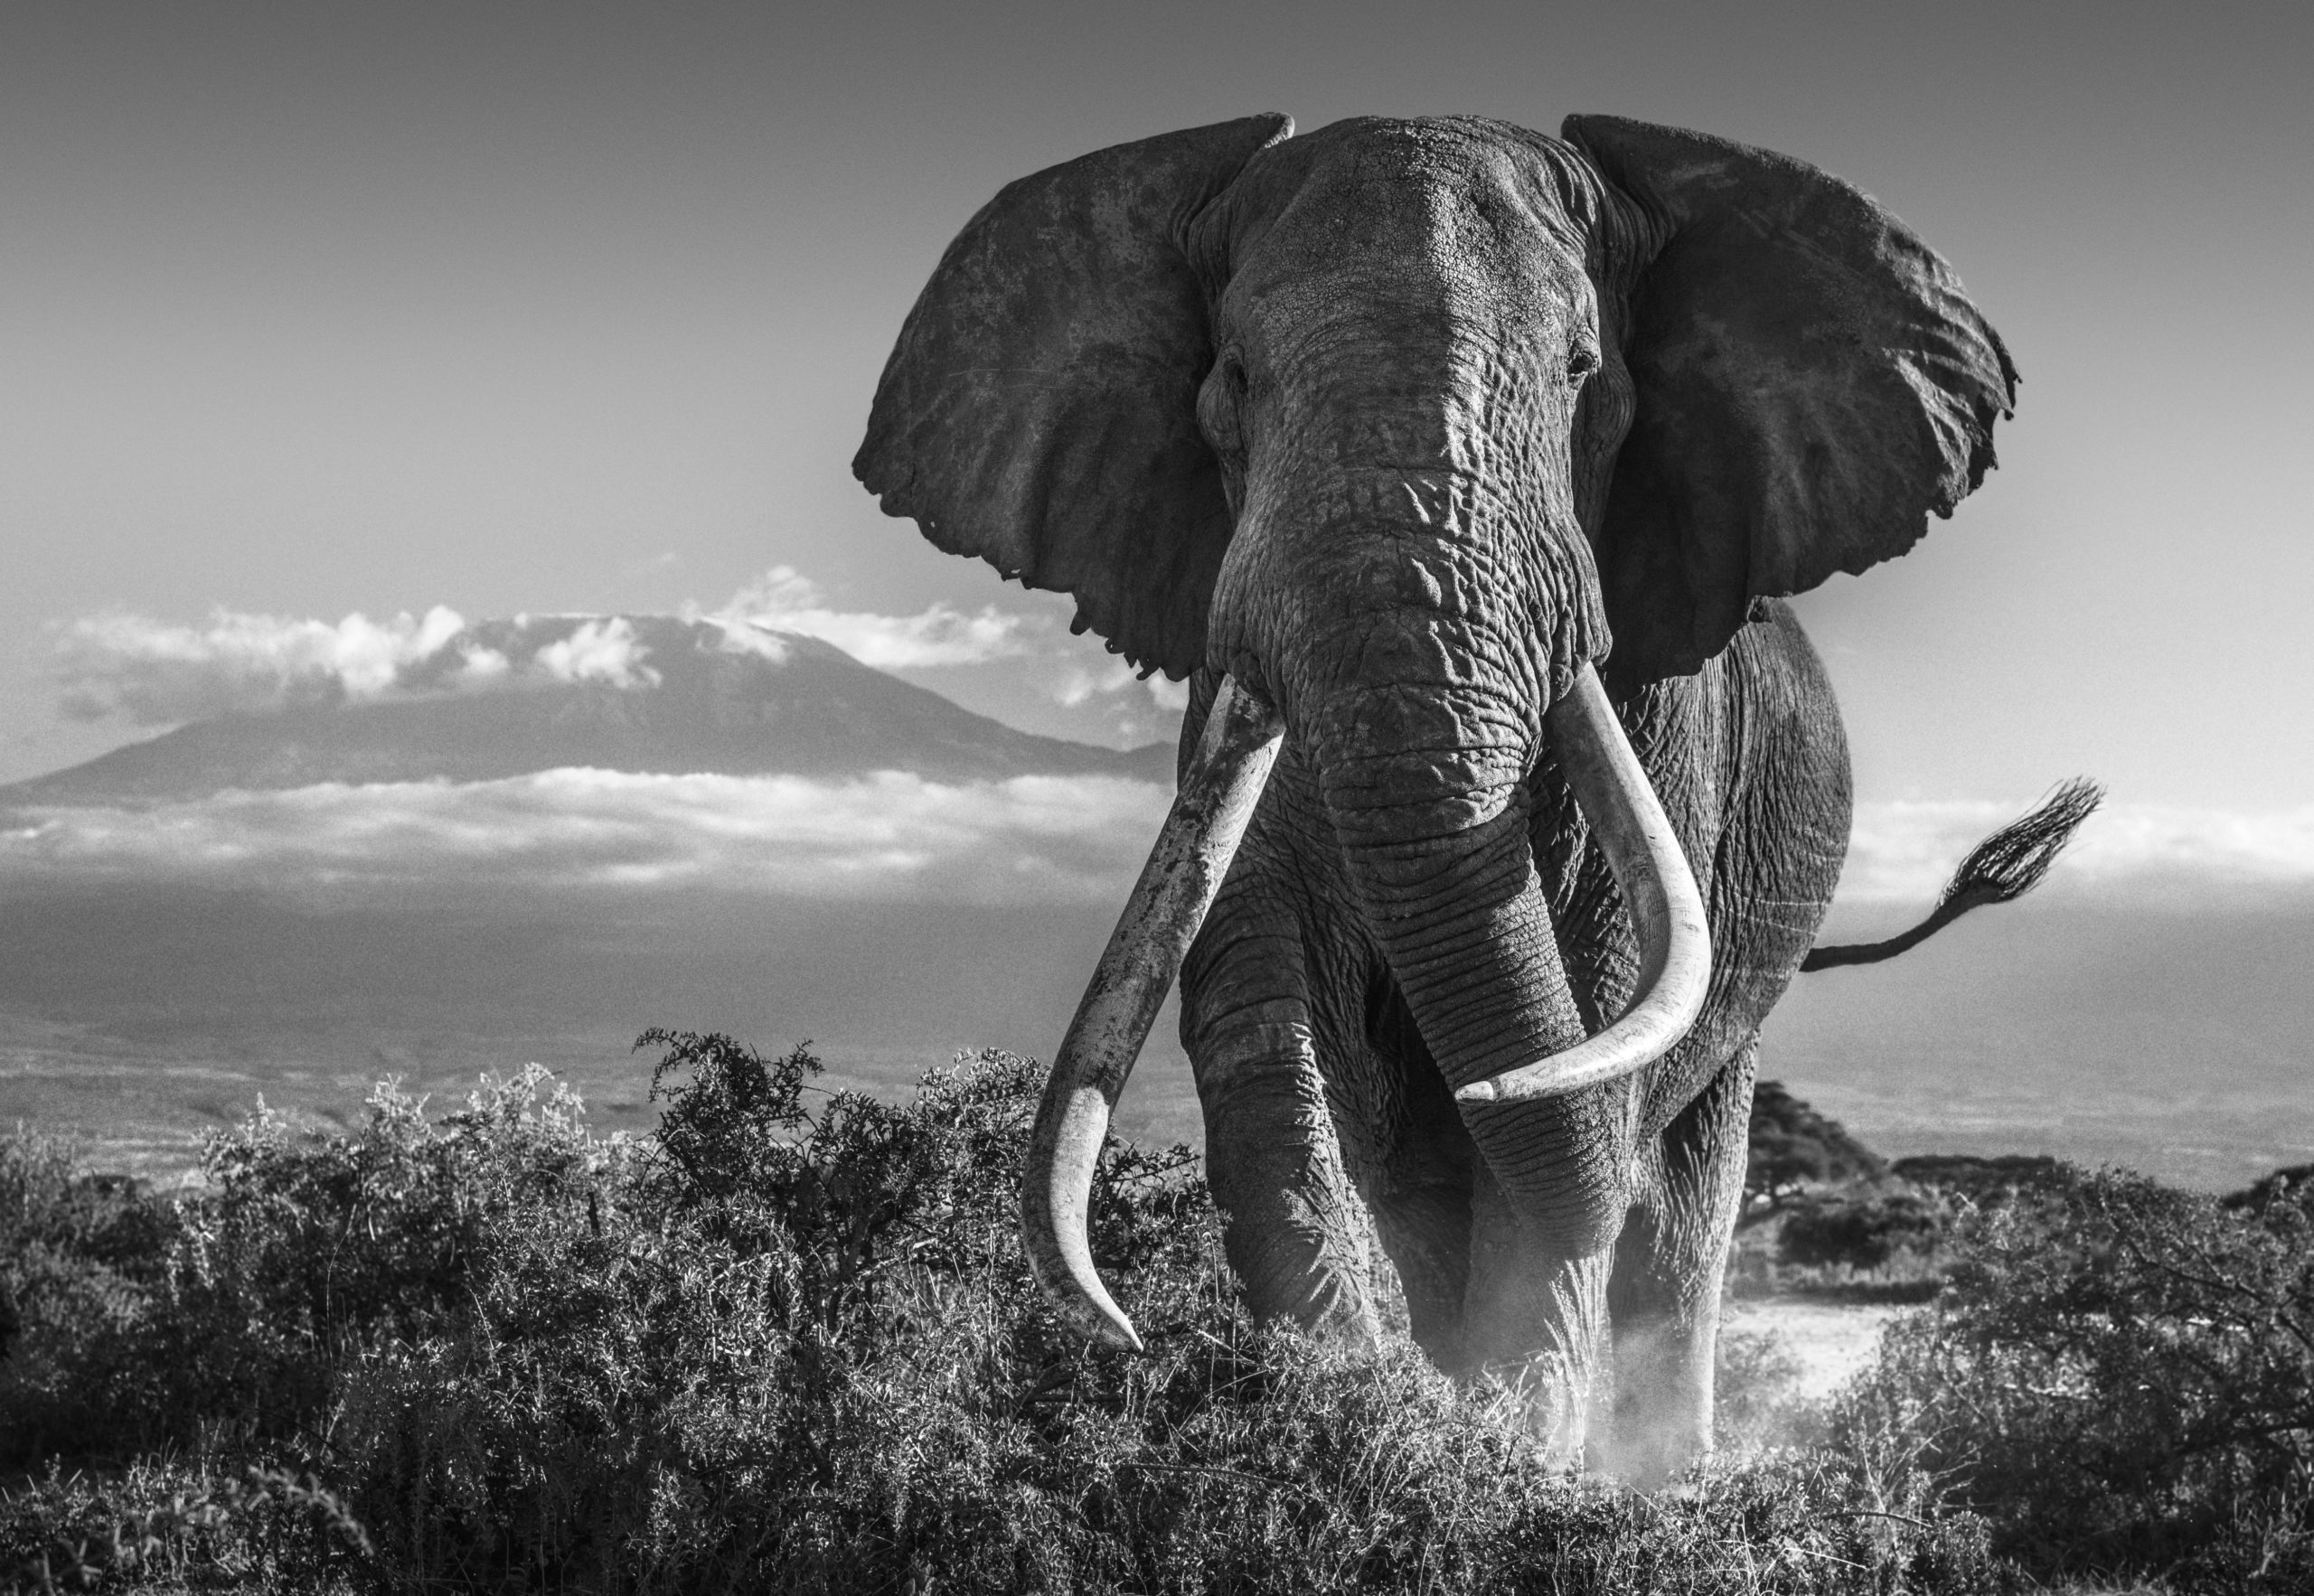 """David says: """"There can be little doubt this image is a career highlight and unquestionably the most warmly received photo I have taken. I will always treasure this image. I doubt I will ever take a more powerful portrait of either an elephant or East Africa. To find him in the open in the foothills of Kilimanjaro offered a lucky opportunity and we took it."""""""